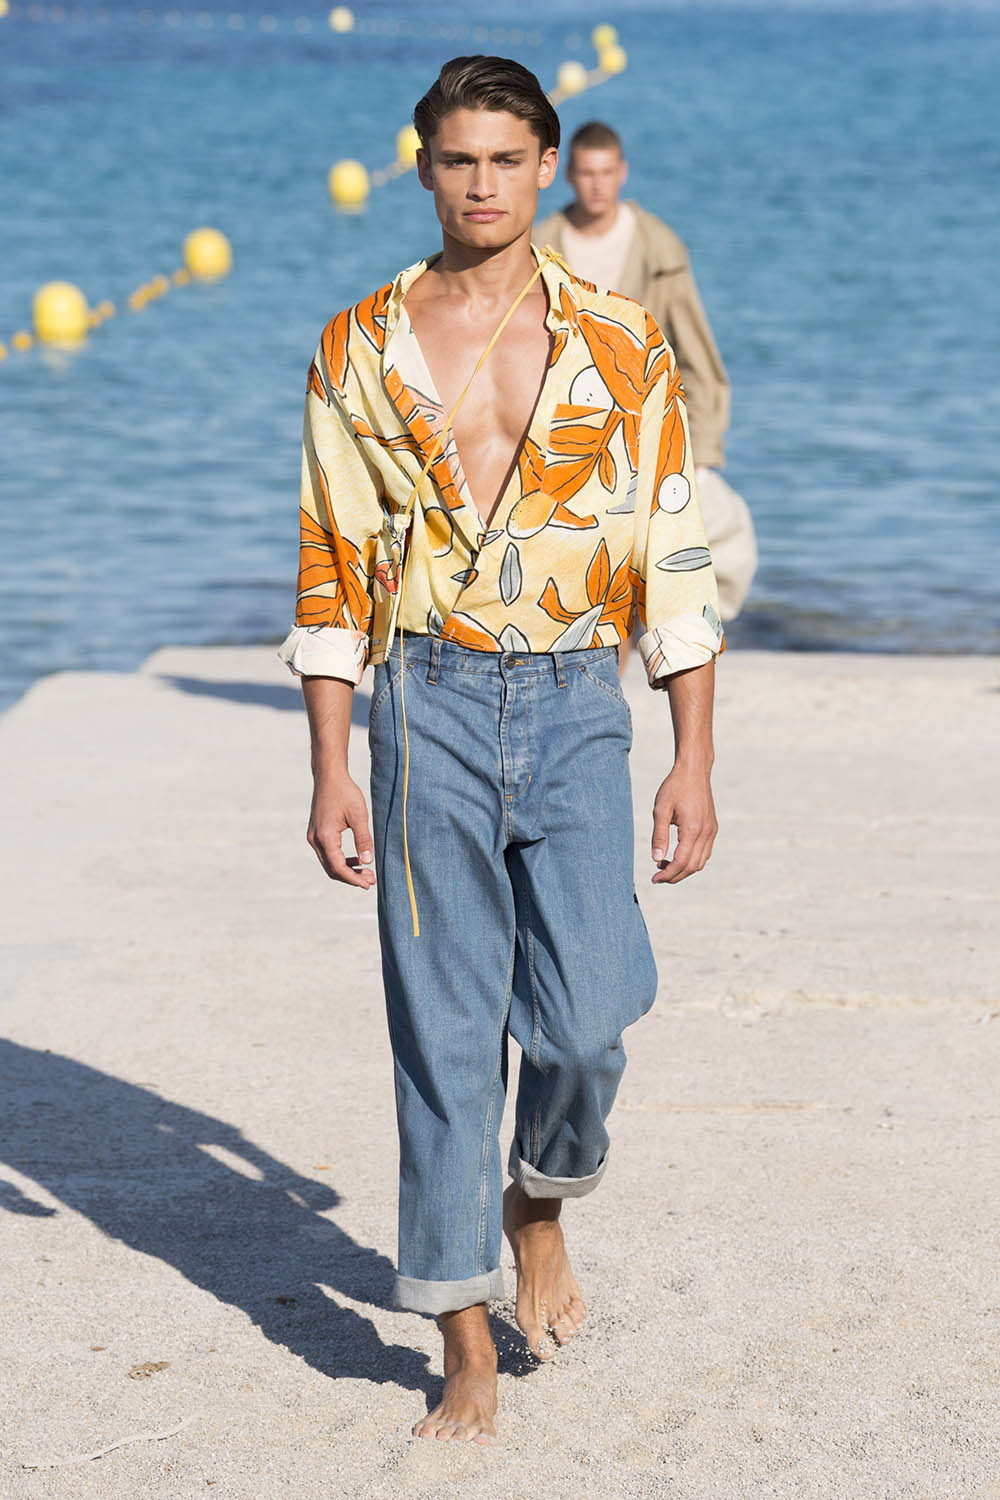 Jacquemus Paris Fashion Week Men's SS19 - Sagaboi - Look 11